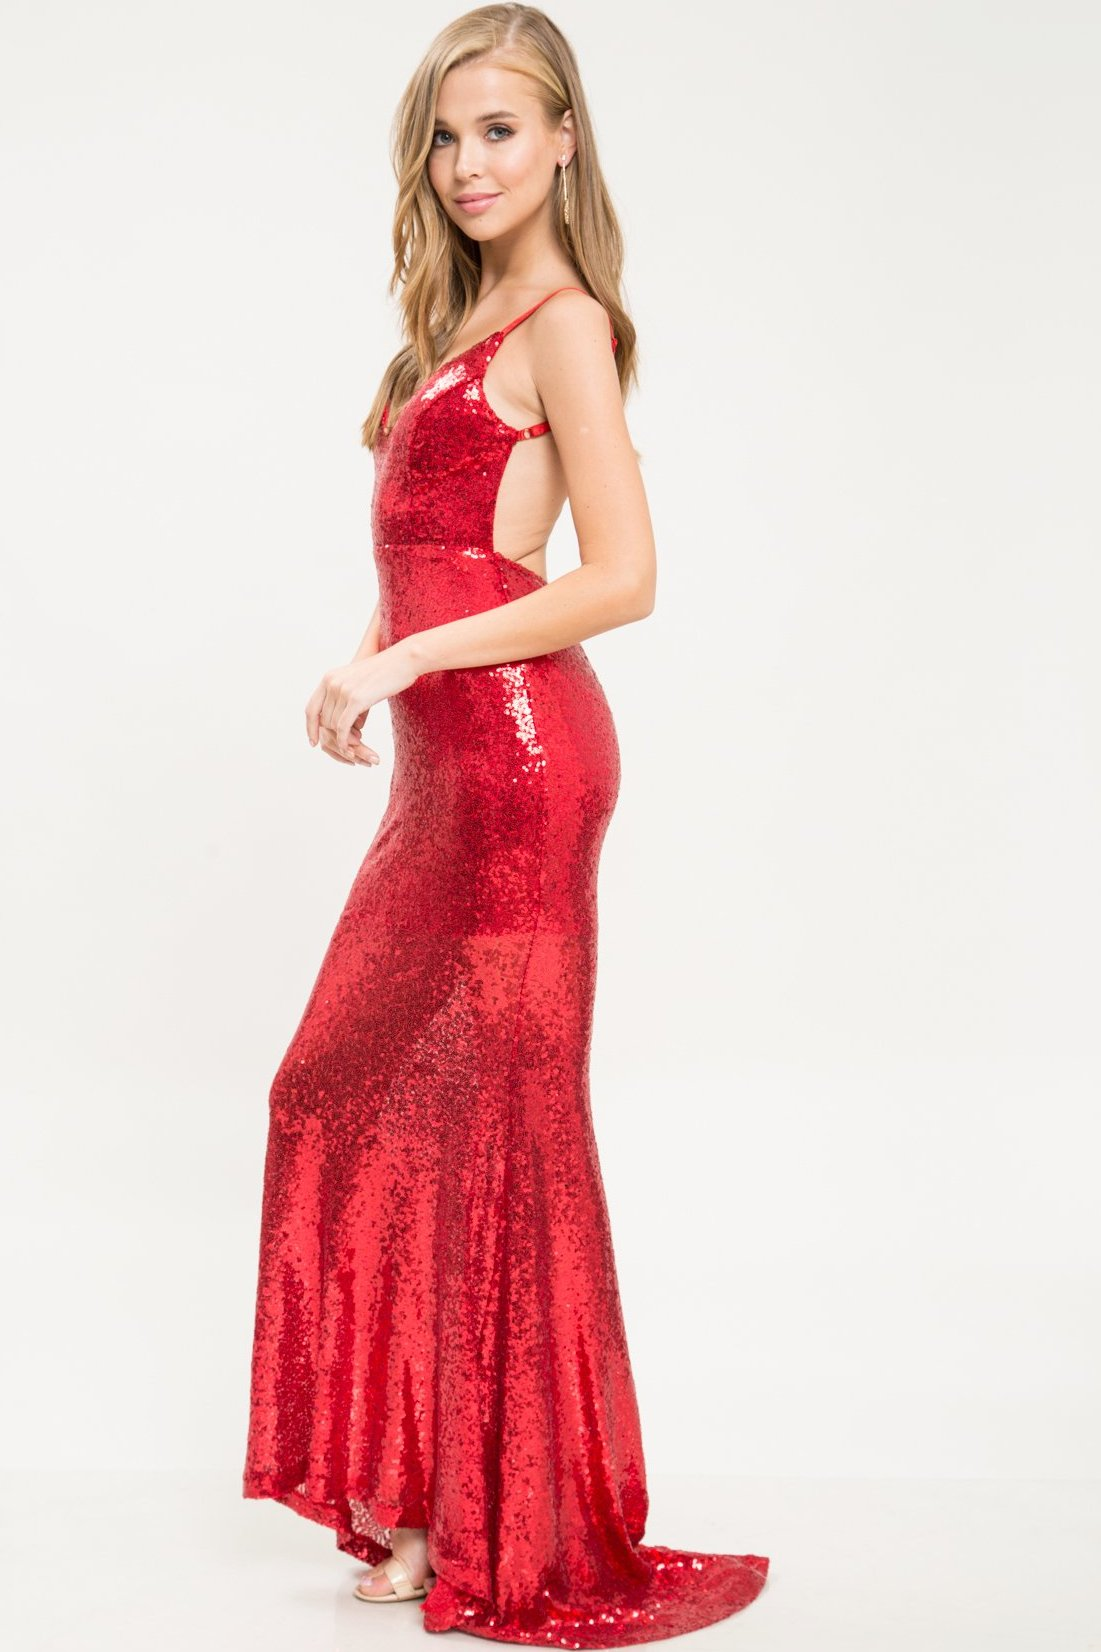 Lady In Red Sequin Gown - Geegeebae